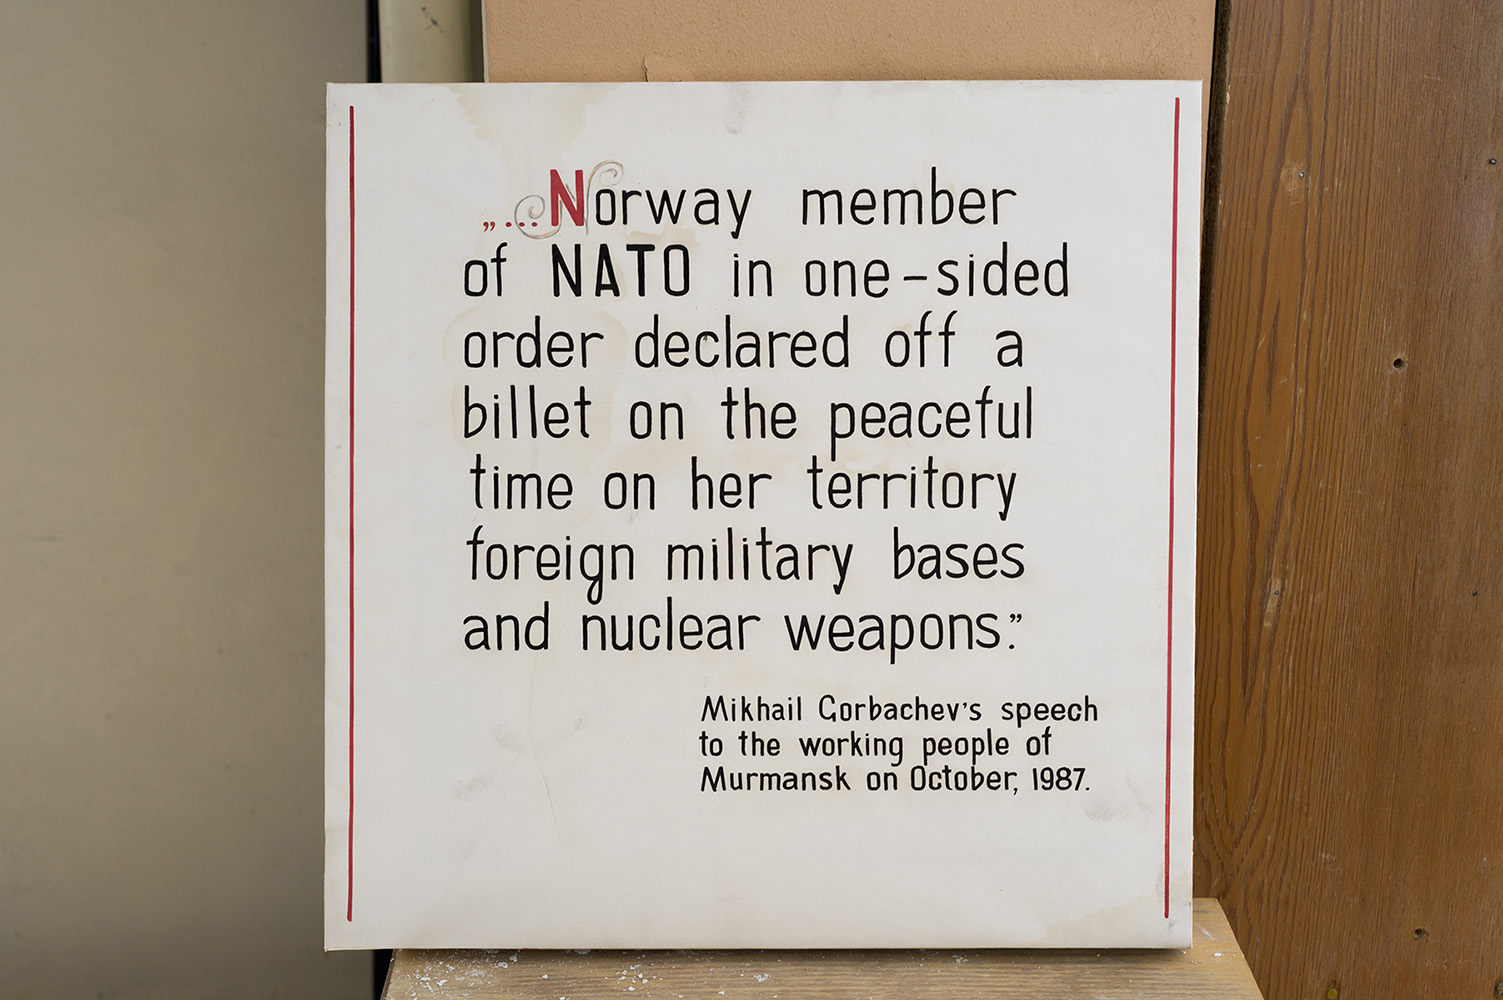 Placard with a quote from Mikhail Gorbachev.Pyramiden is a Russian settlement and coal mining community on the archipelago of Svalbard, Norway. Founded by Sweden in 1910 and sold to the Soviet Union in 1927, Pyramiden was closed in 1998 and has since remained largely abandoned with most of its infrastructure and buildings still in place.